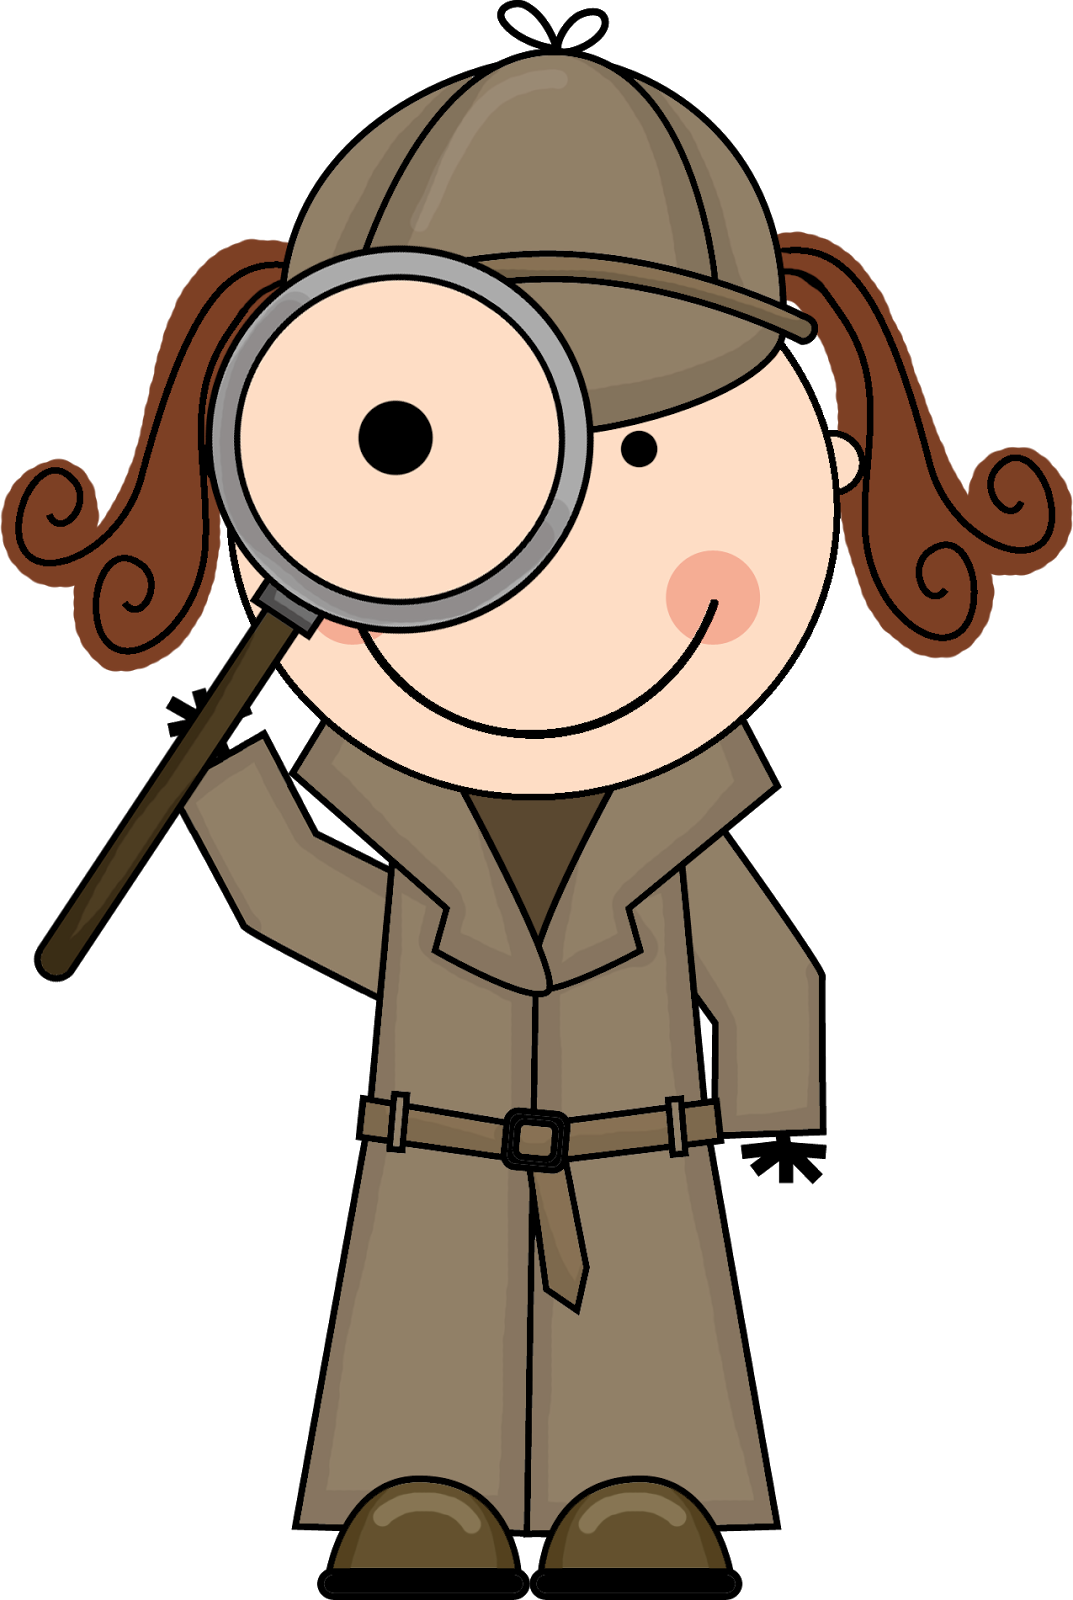 Image result for cartoon child detective